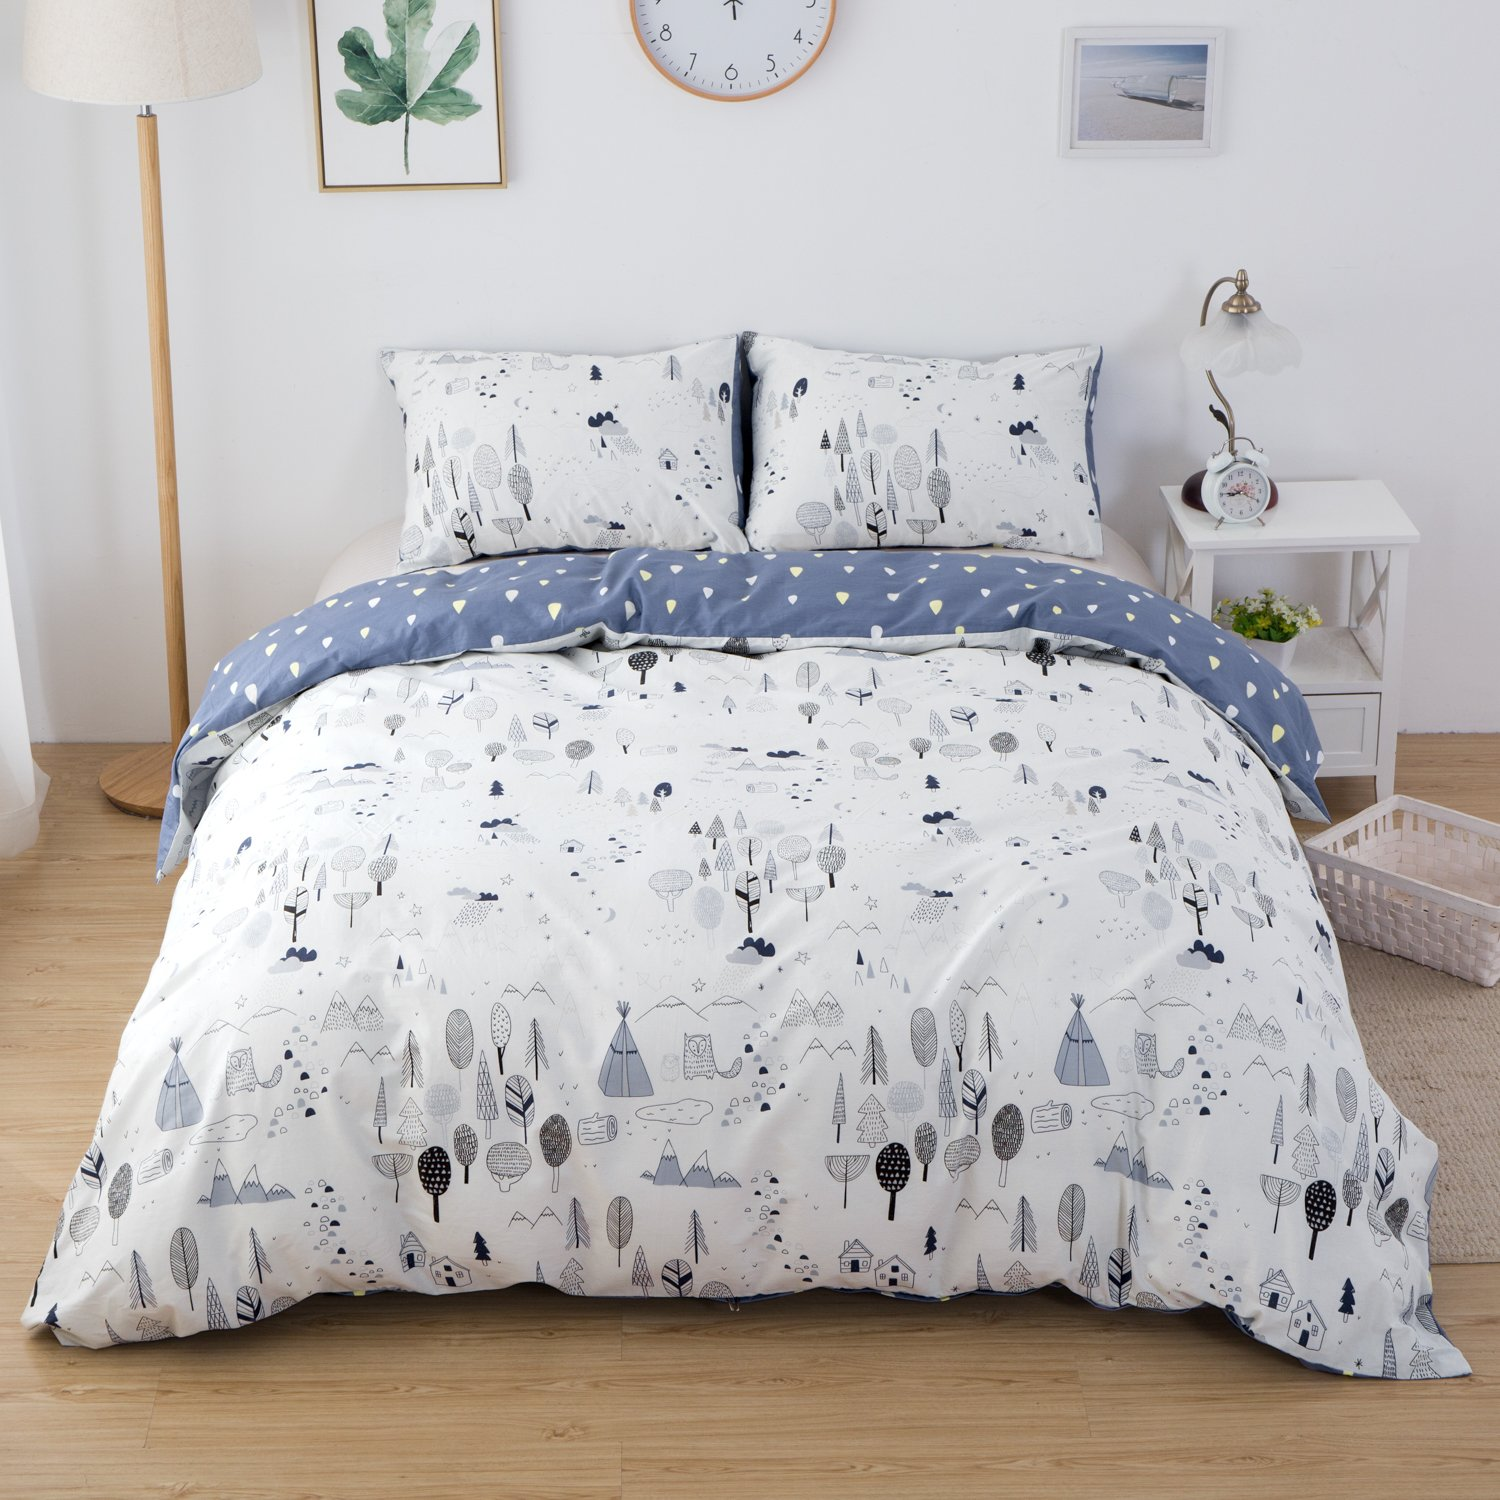 CLOTHKNOW Forest Duvet Cover Sets Full/Queen for Boys Girls Woods Tree Bedding Sets 3 Pieces - 1 Duvet Cover with Zipper Closure 2 Pillowcases NO Comforter